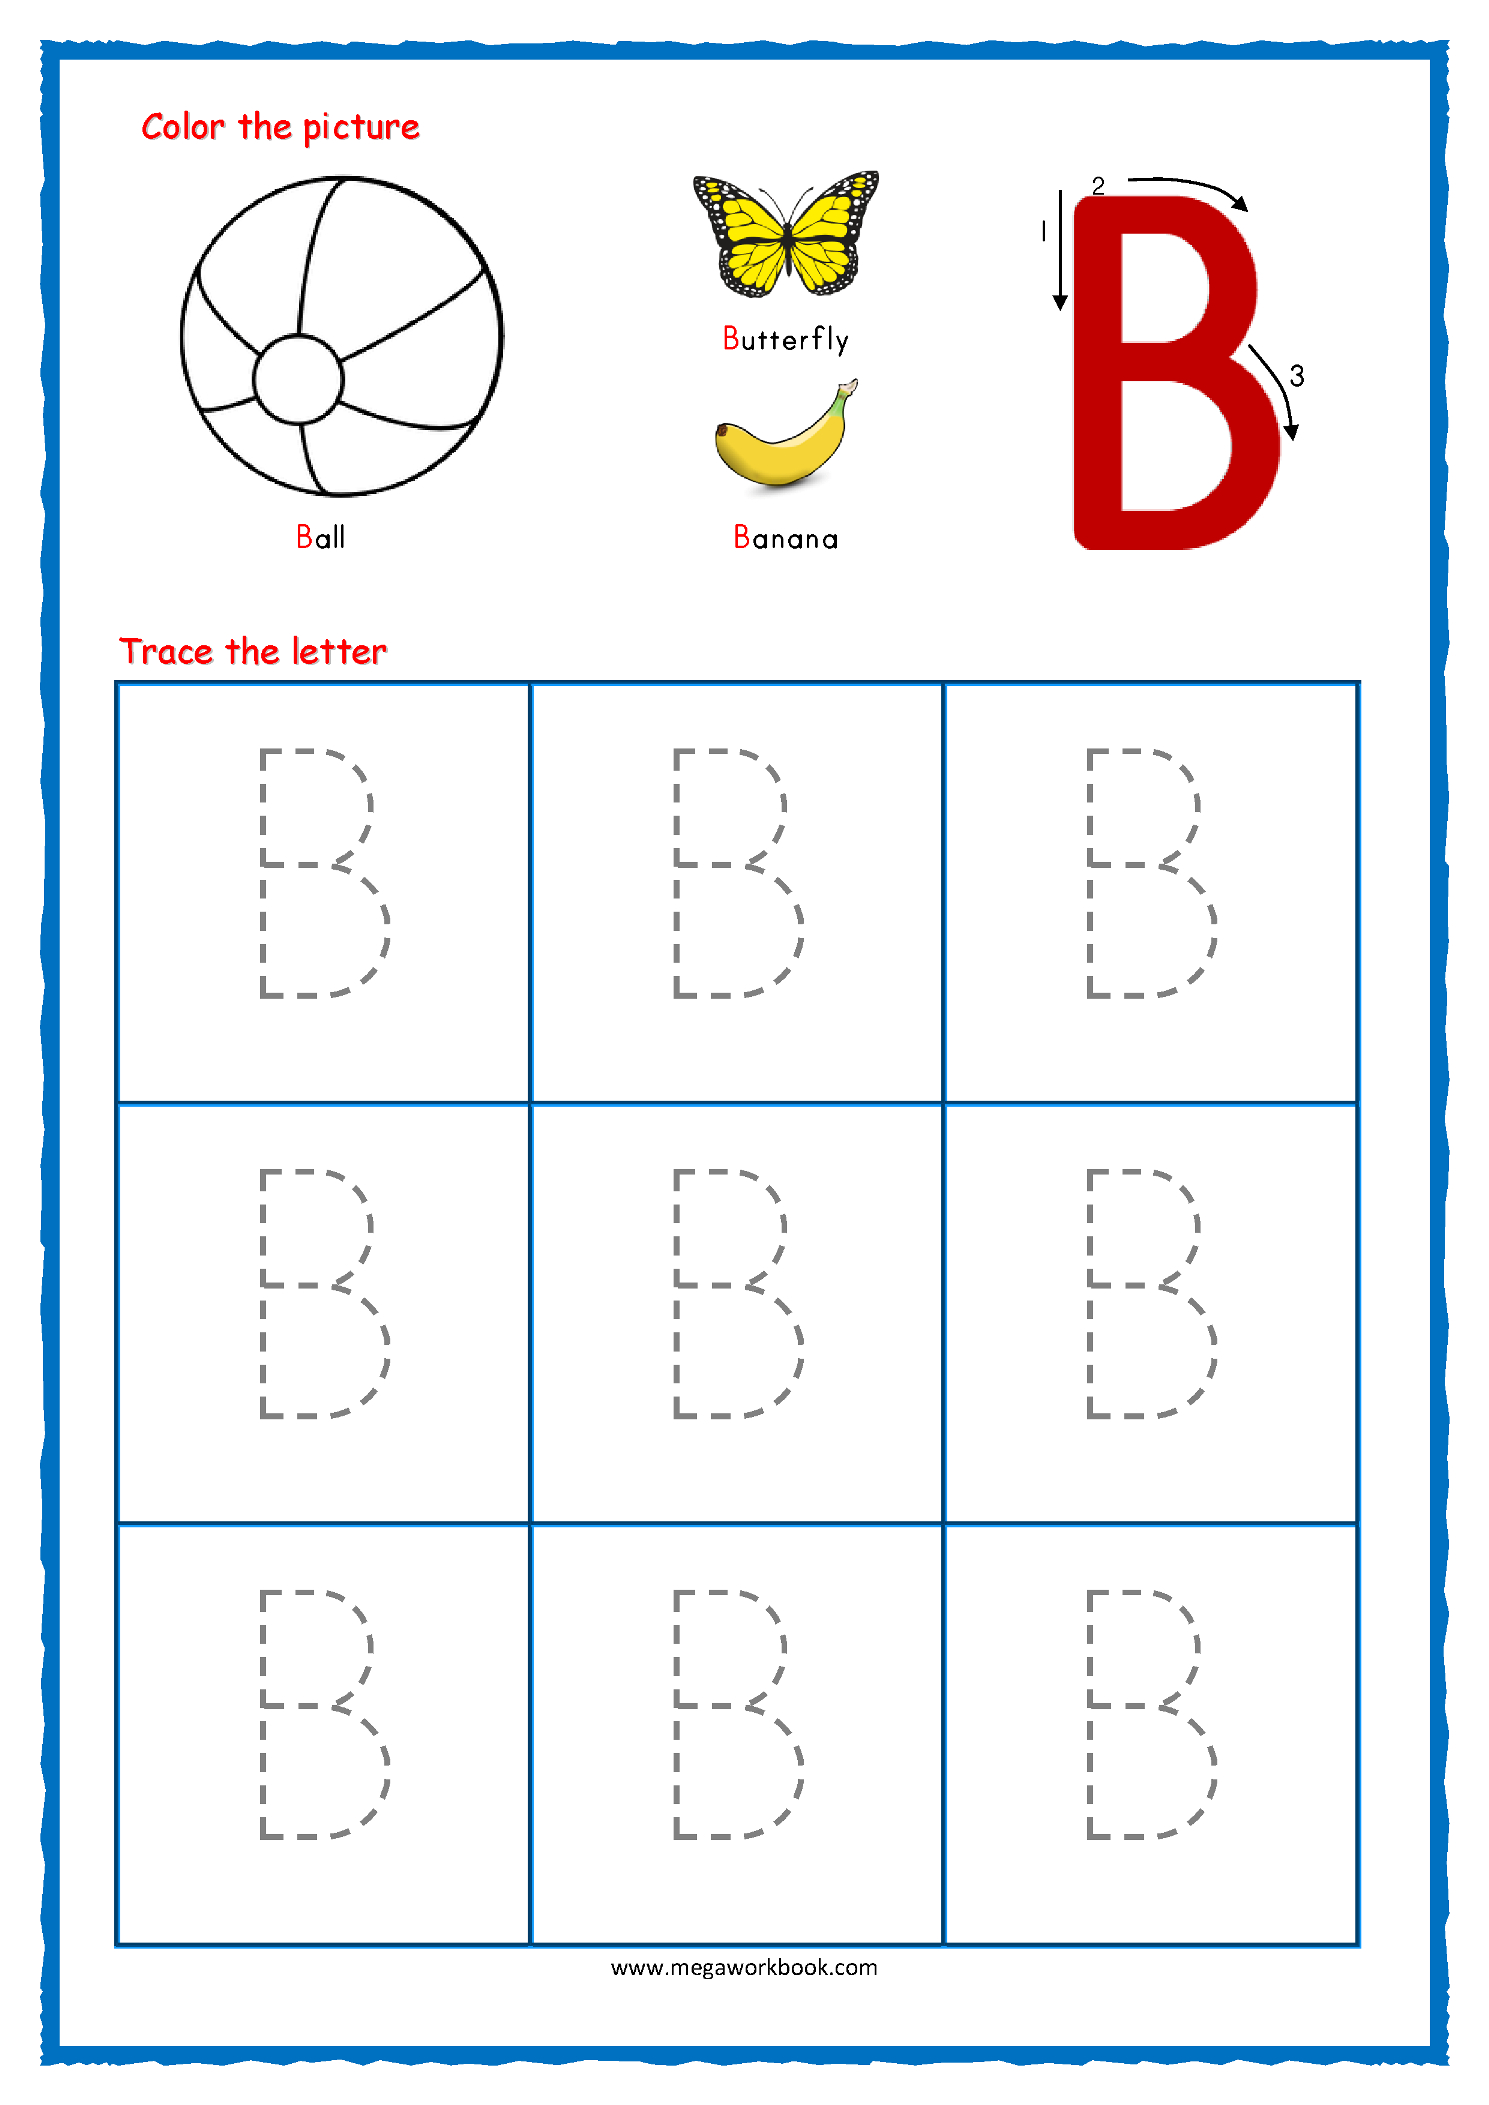 Tracing Letters - Alphabet Tracing - Capital Letters pertaining to Tracing Letters For Kindergarten Sheets